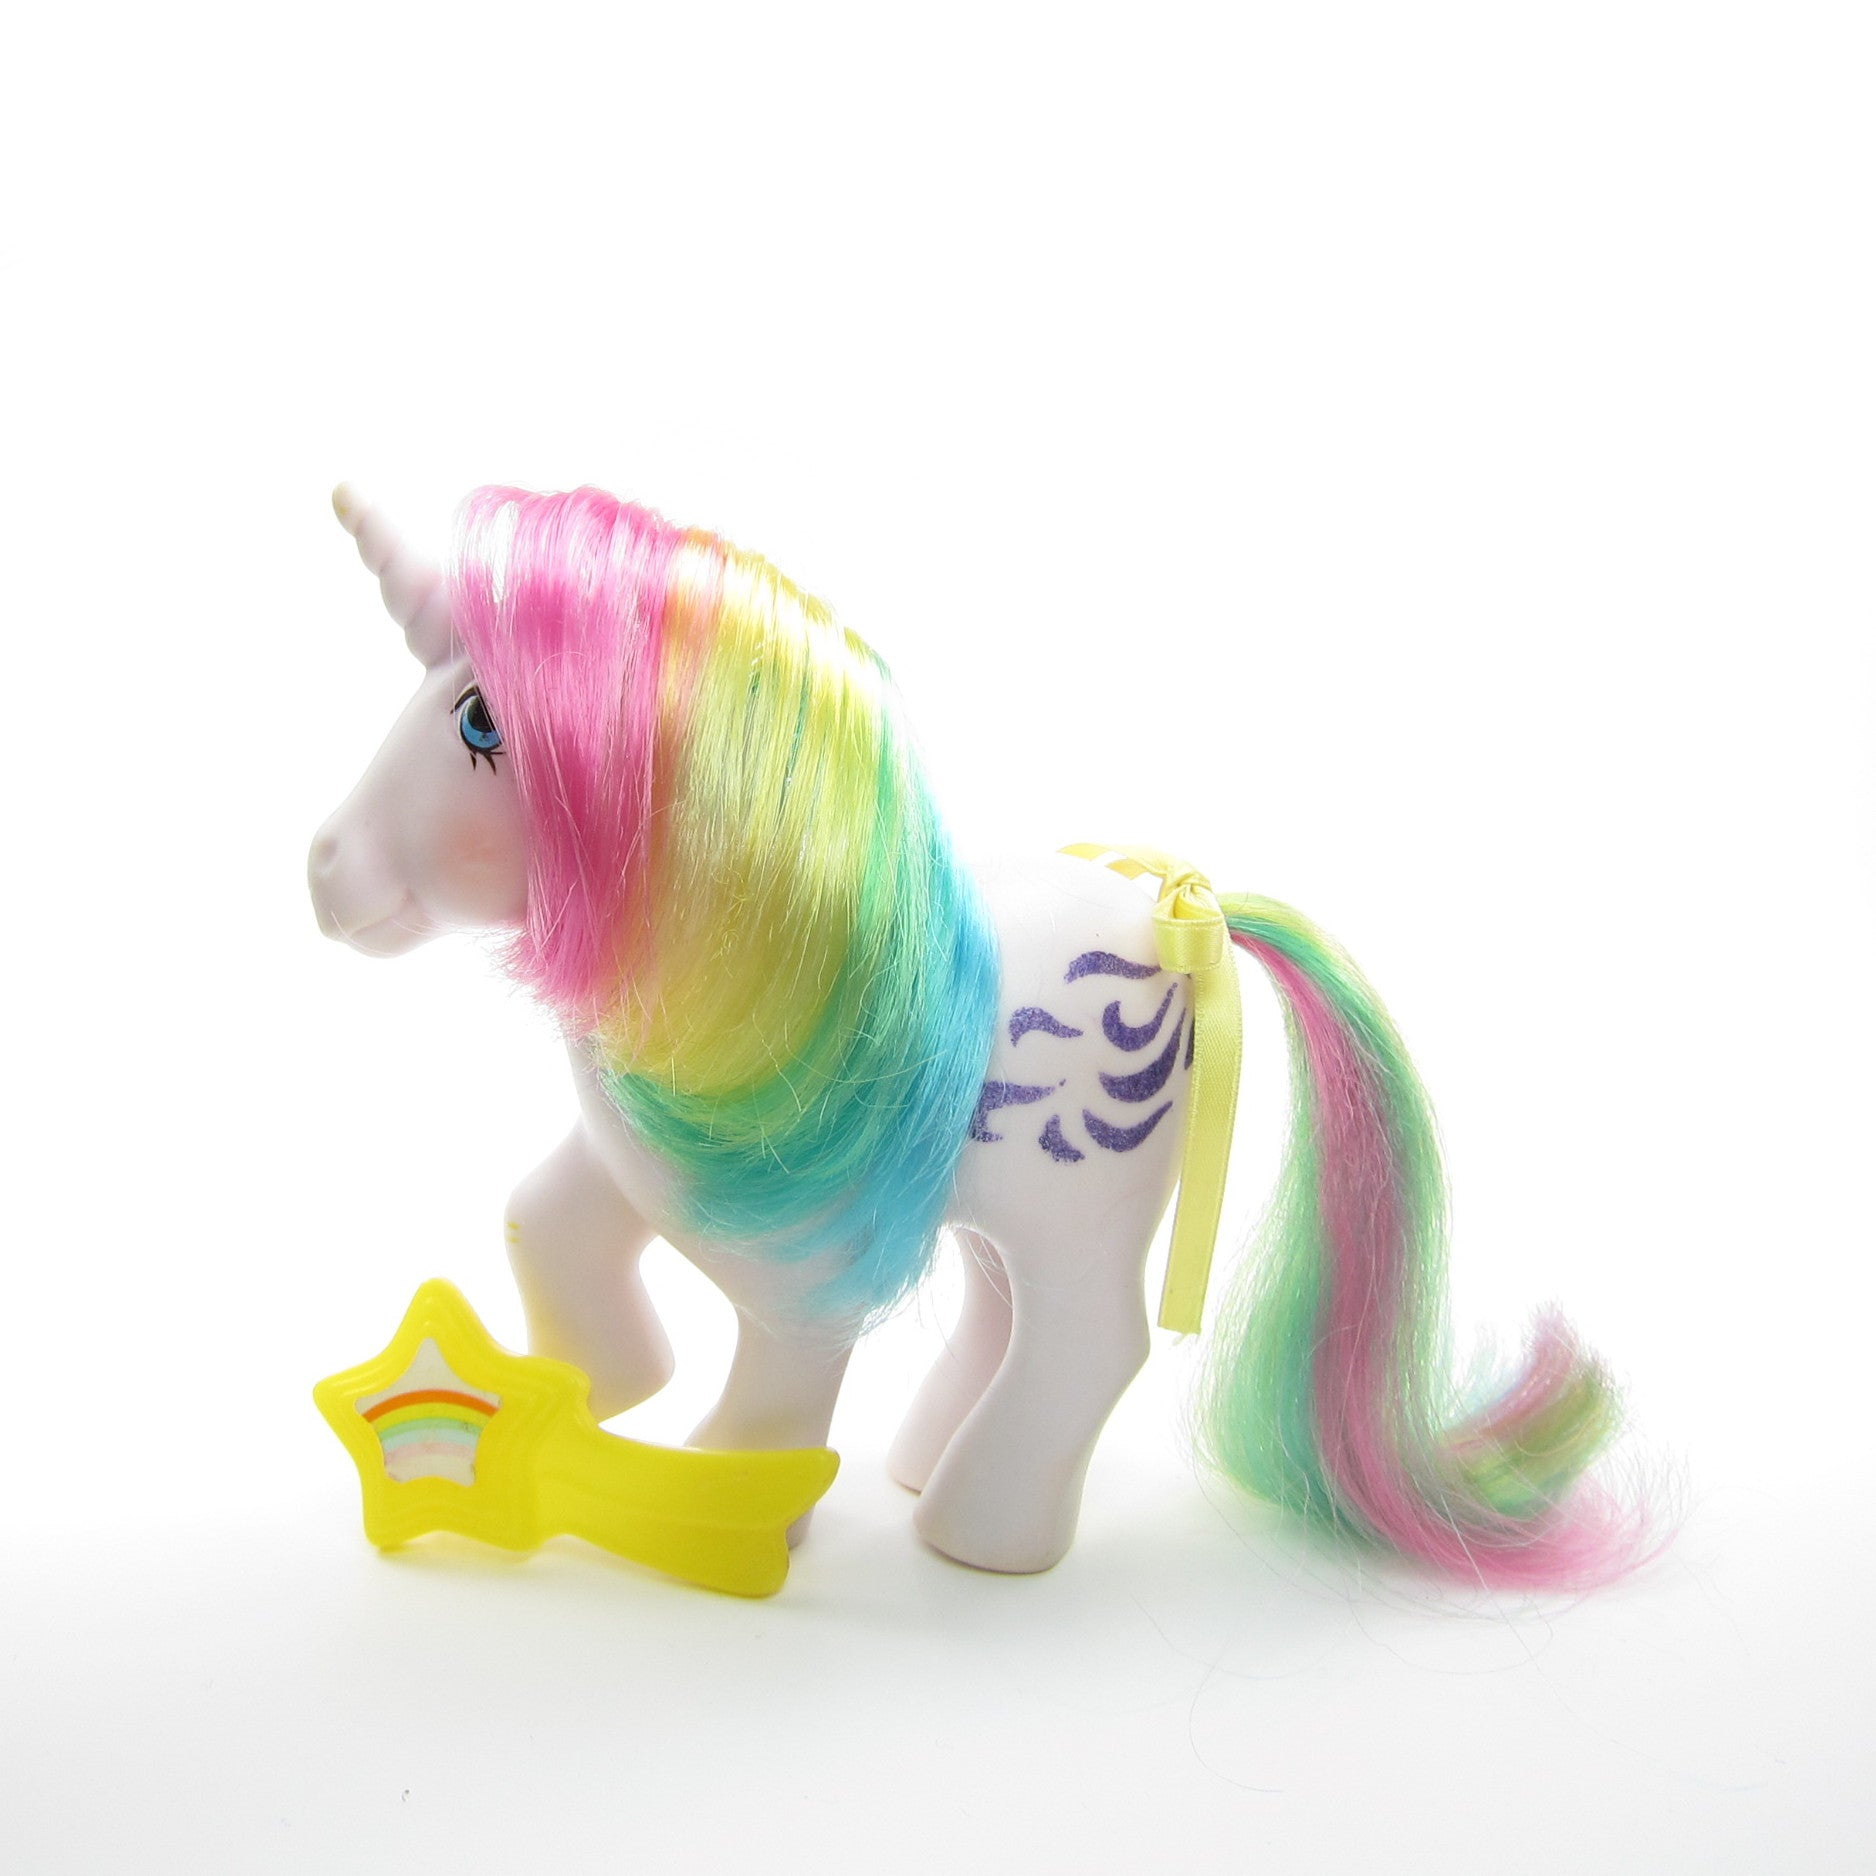 Windy My Little Pony Vintage G1 Rainbow Hair Unicorn